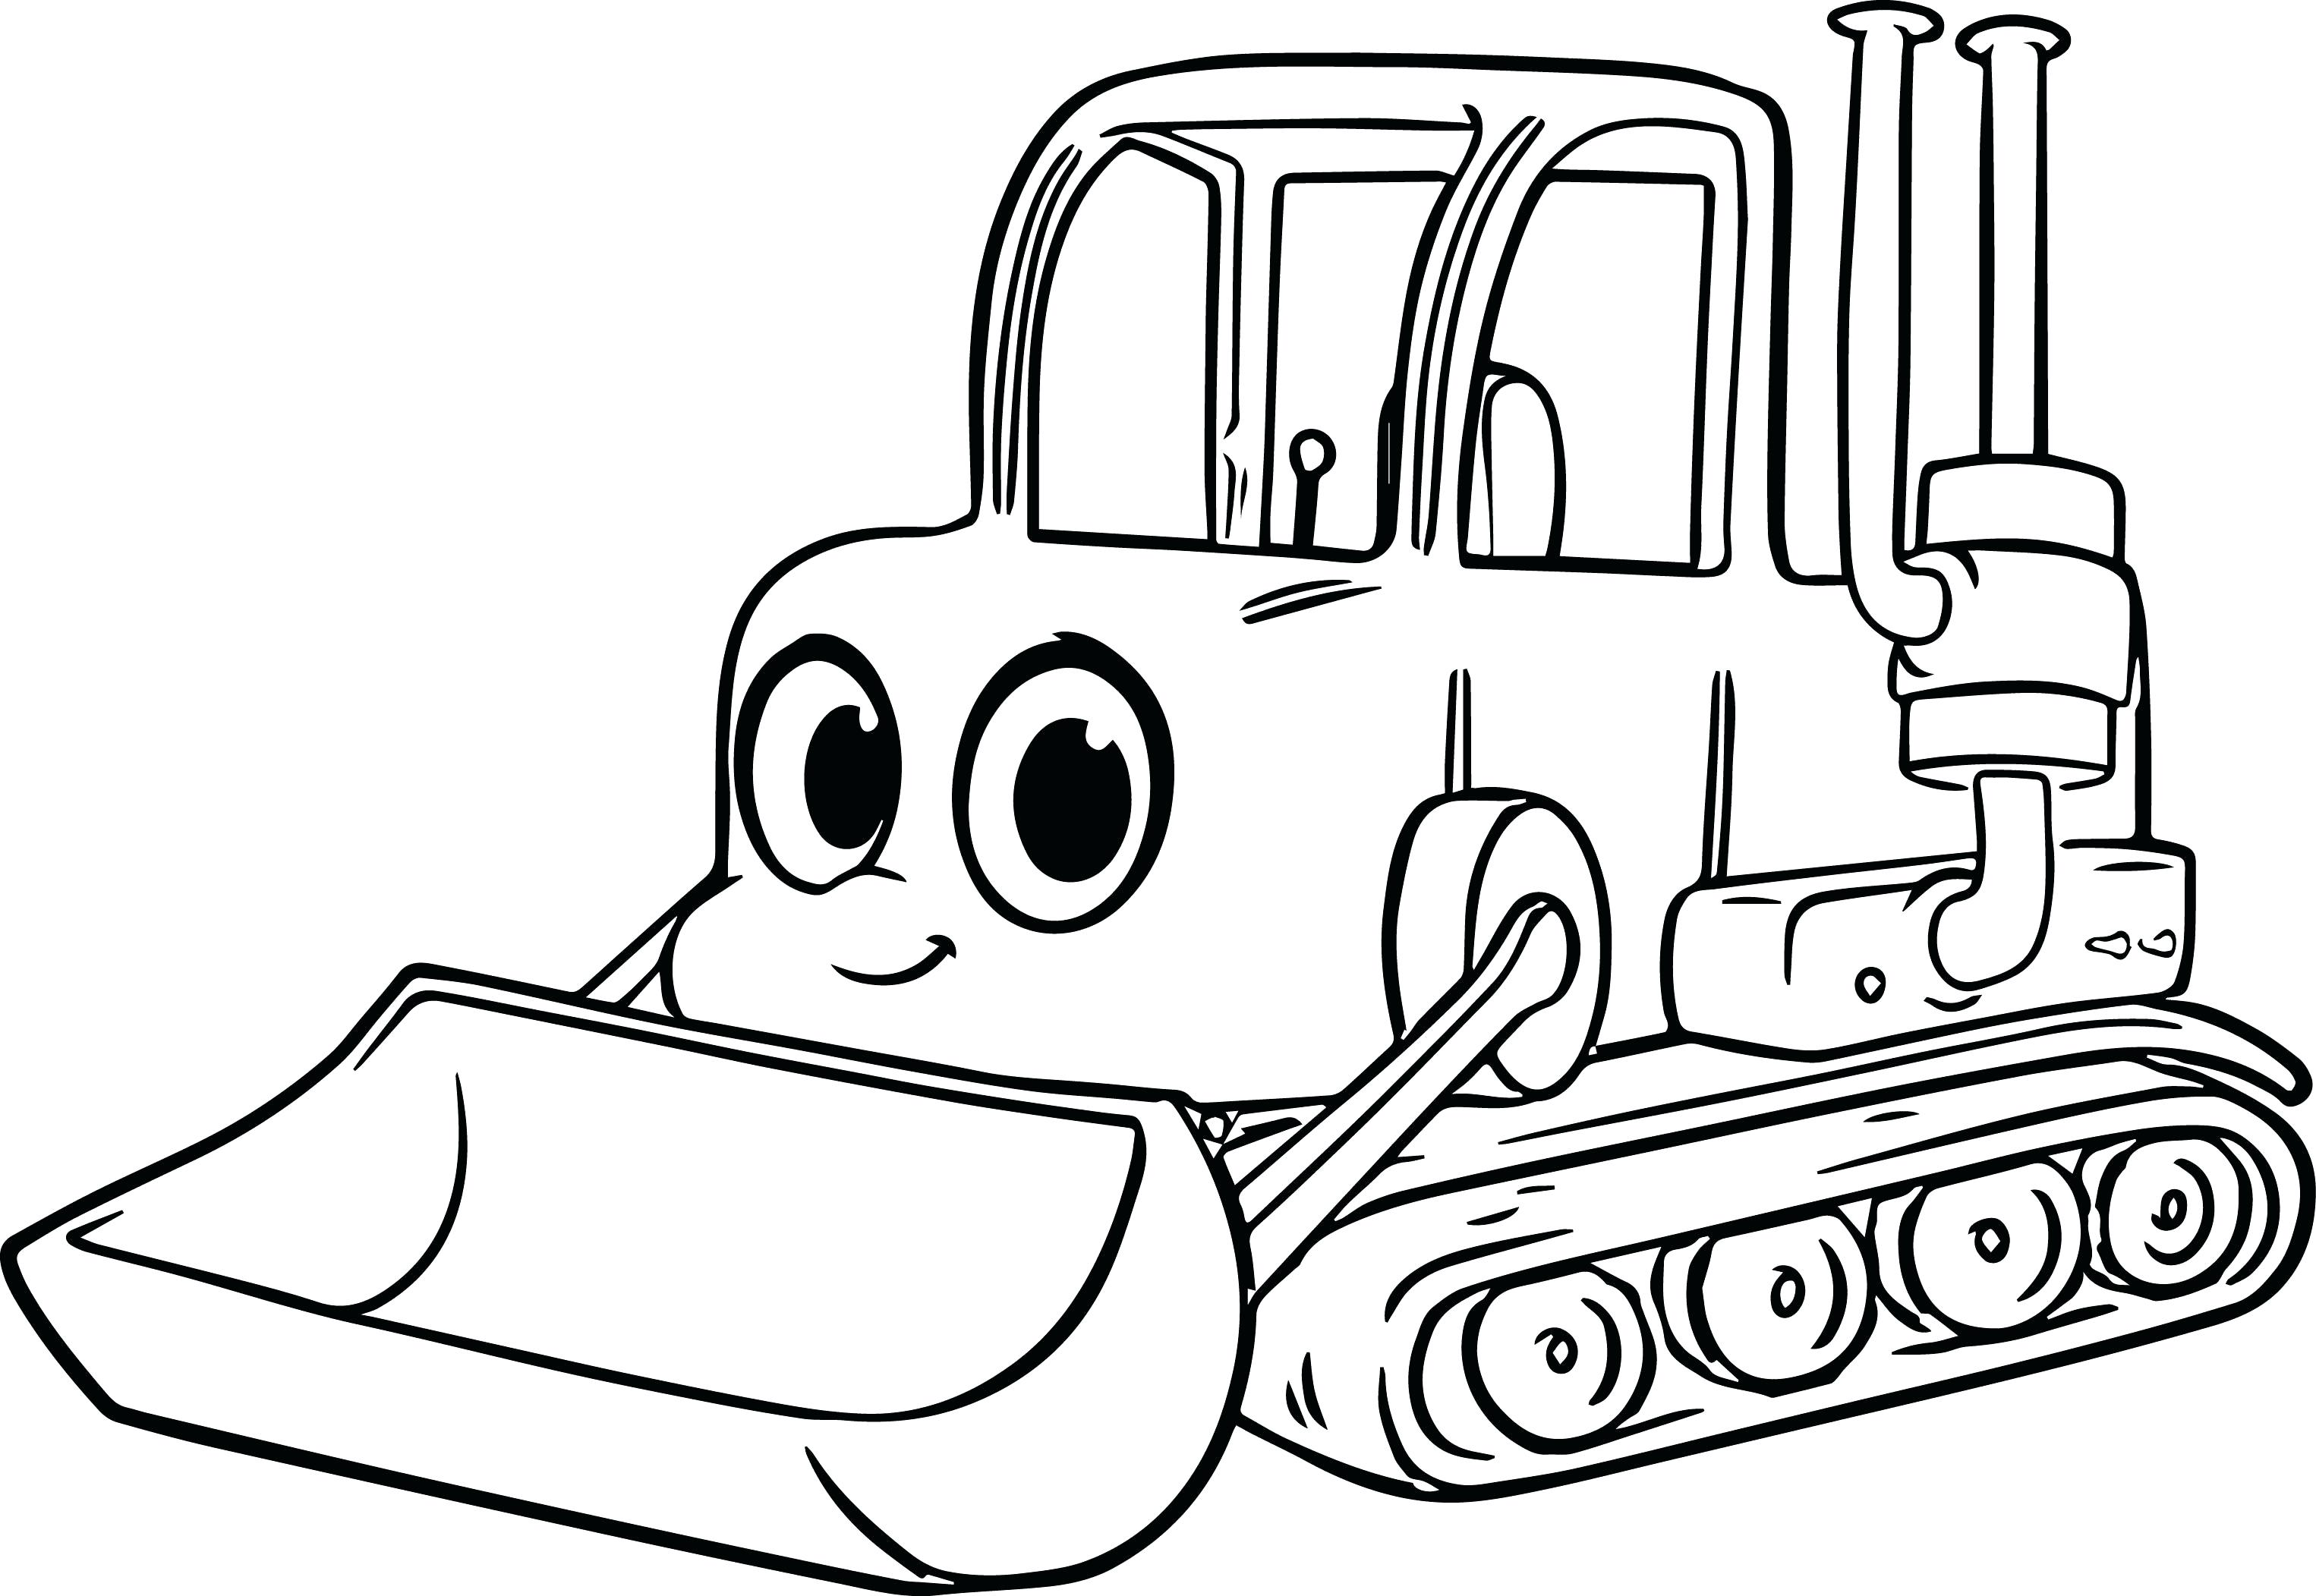 Digger Drawing Free Download Best Digger Drawing On